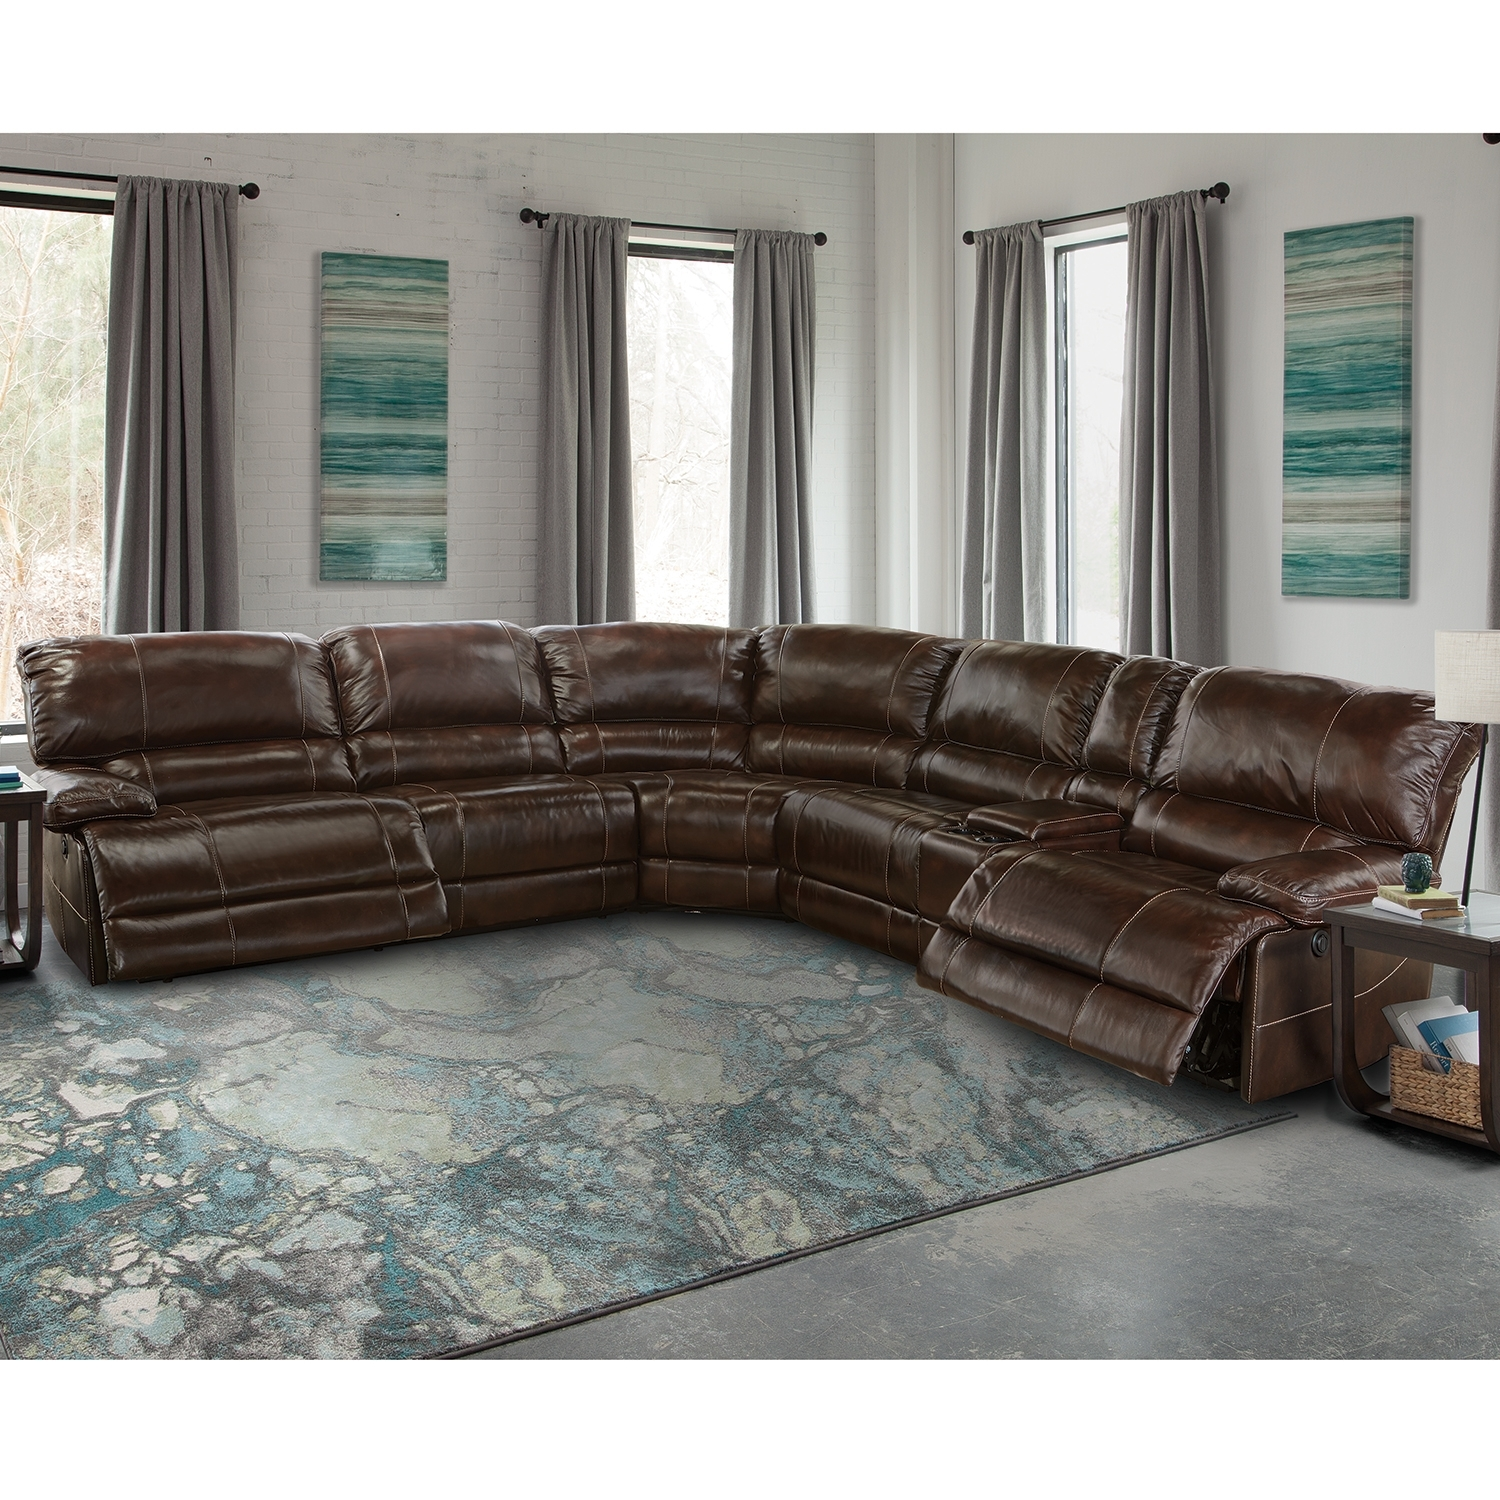 Summerbridge 6 Pc Leather Sectional Sofa - Sofa Design Ideas throughout Travis Cognac Leather 6 Piece Power Reclining Sectionals With Power Headrest & Usb (Image 27 of 30)